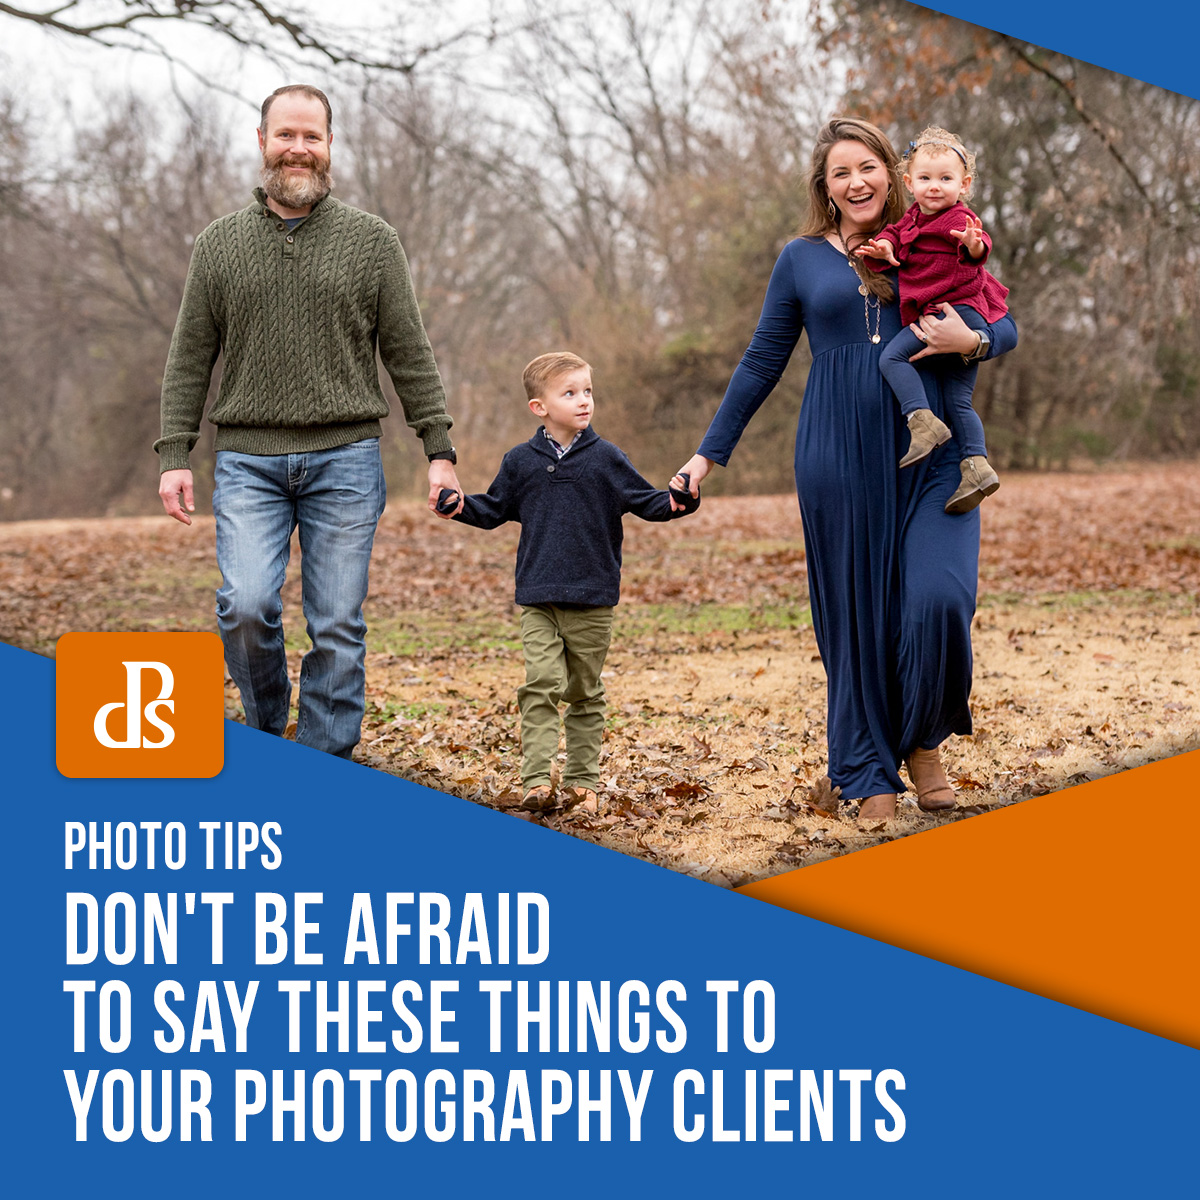 say-these-things-to-your-photography-clients